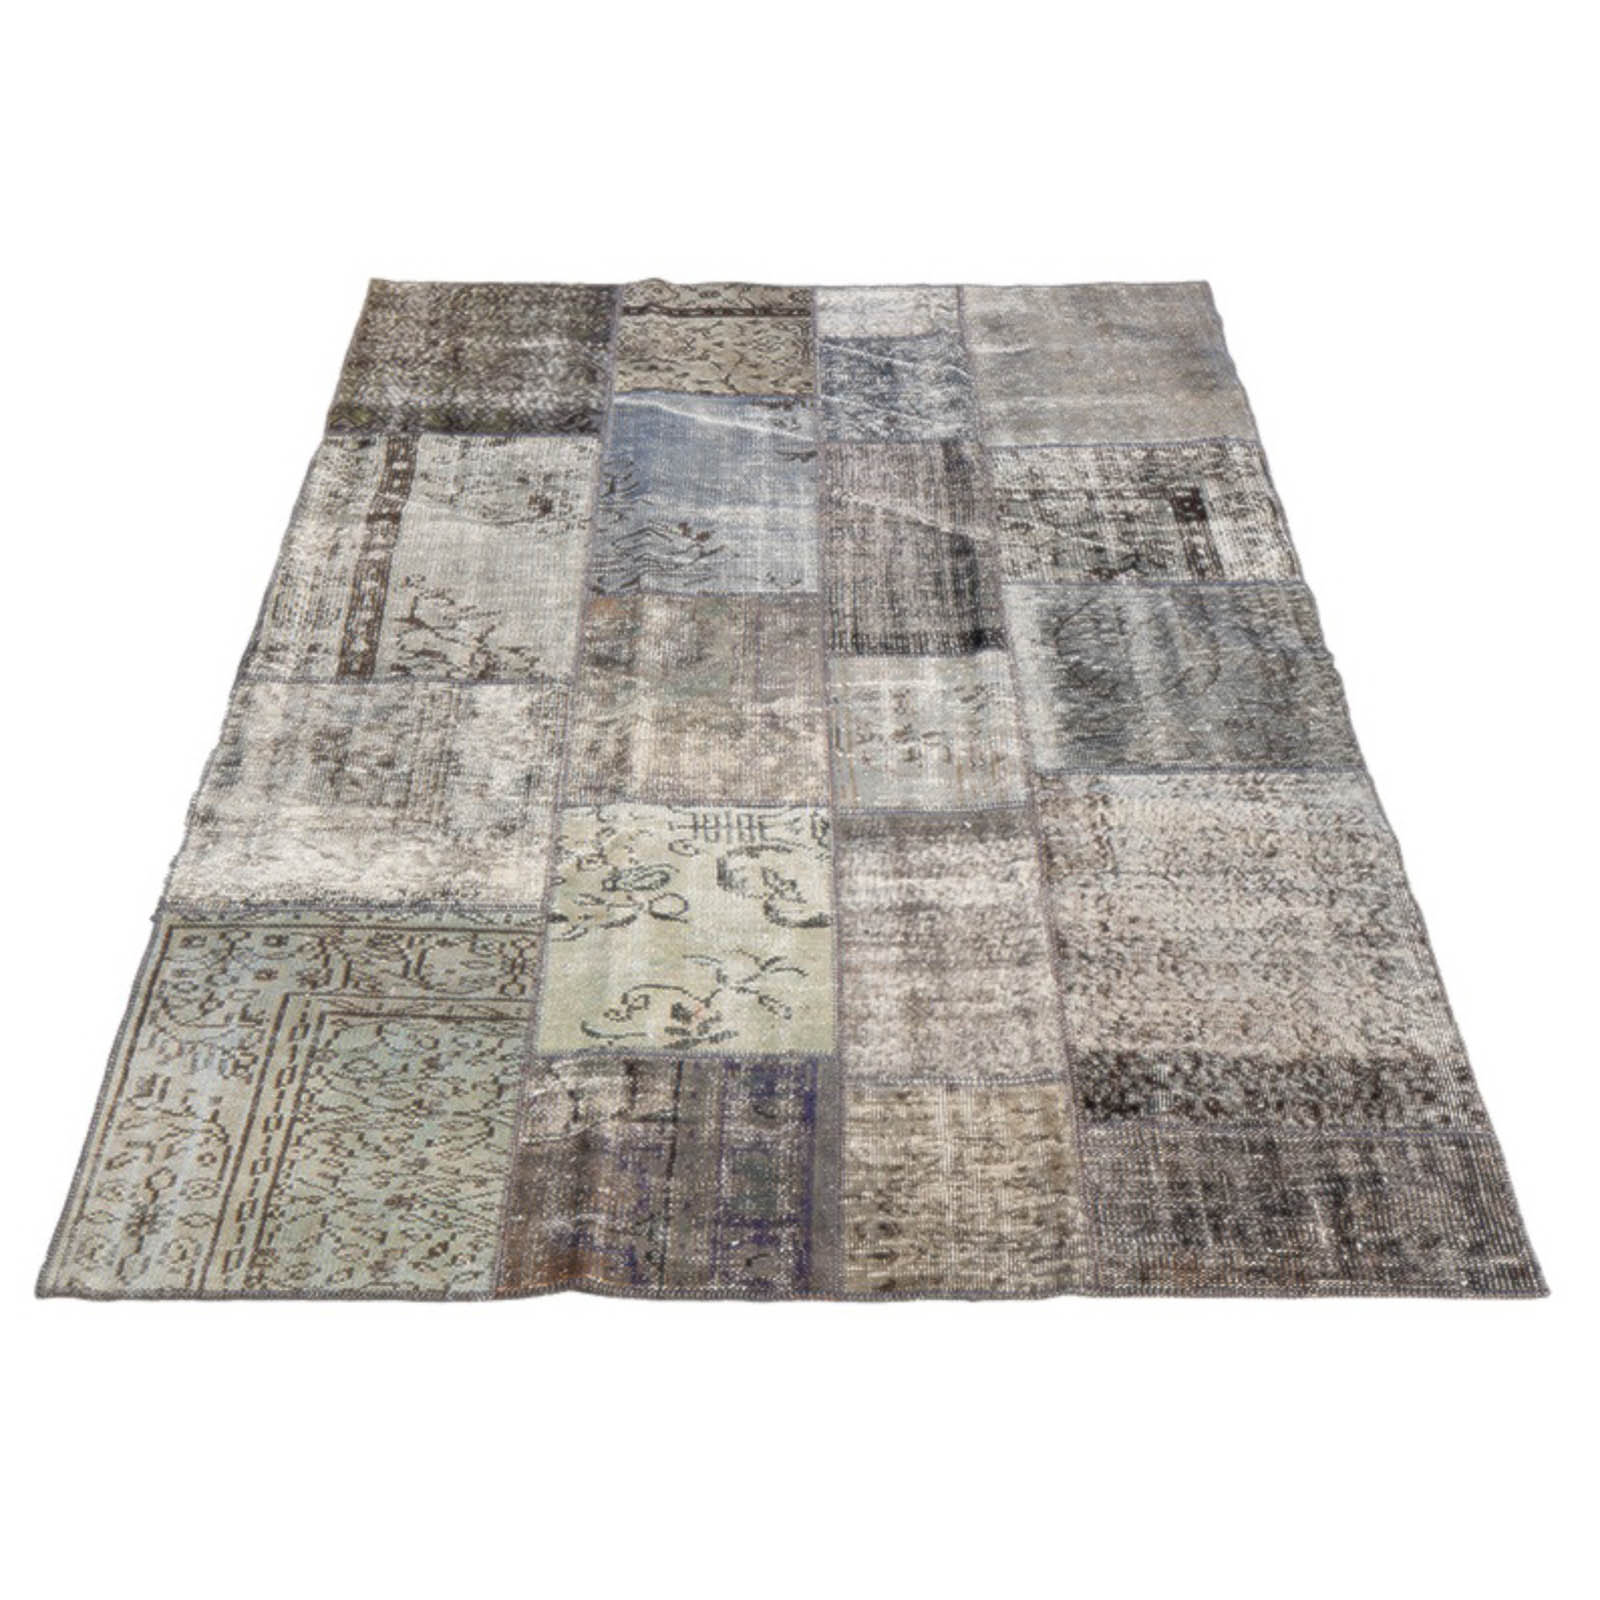 Vintage Rugs in Grey by Massimo